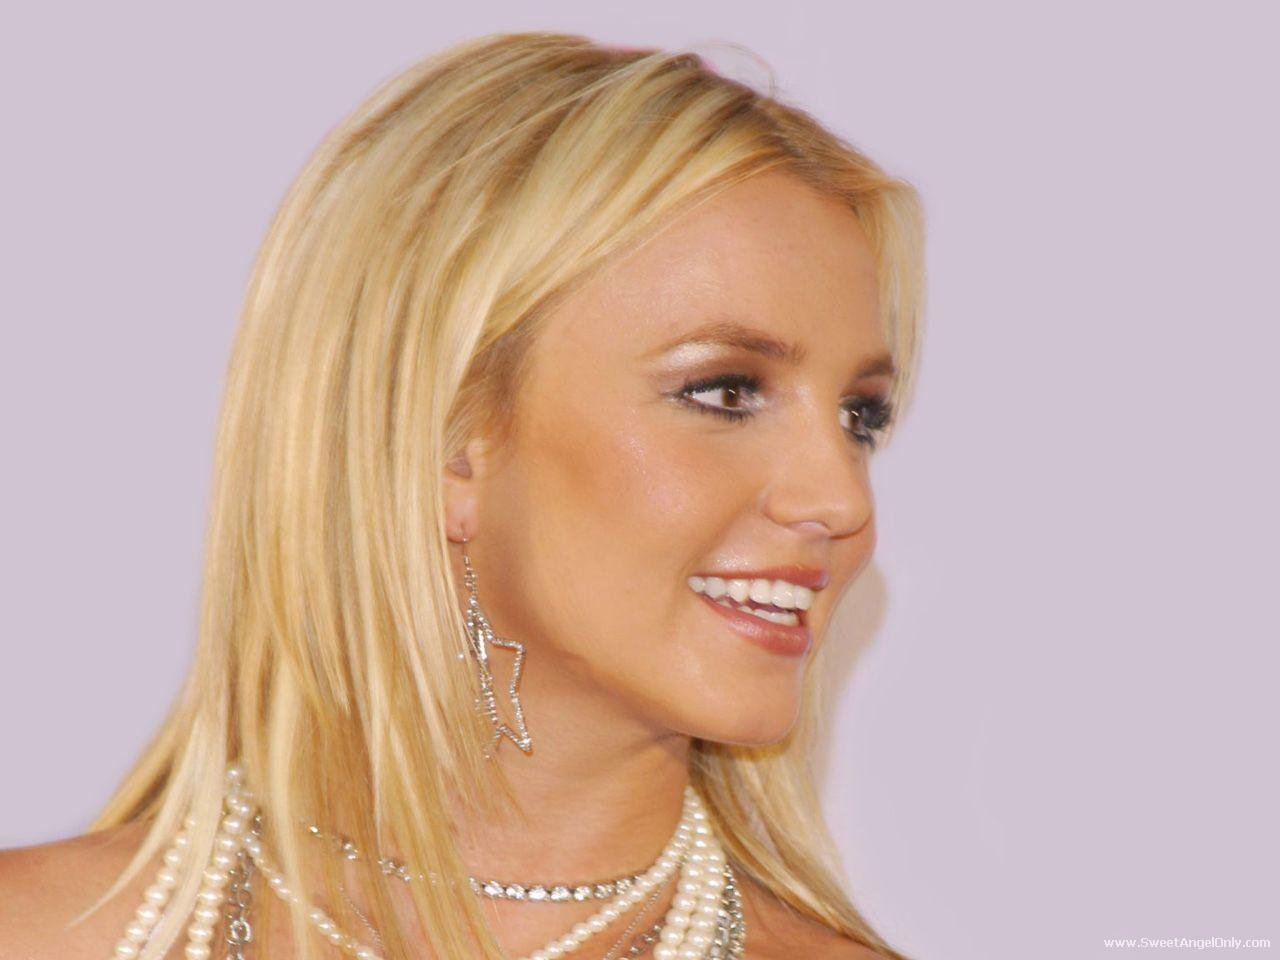 Booty Me Now Britney Spears Wallpapers 1440x1280